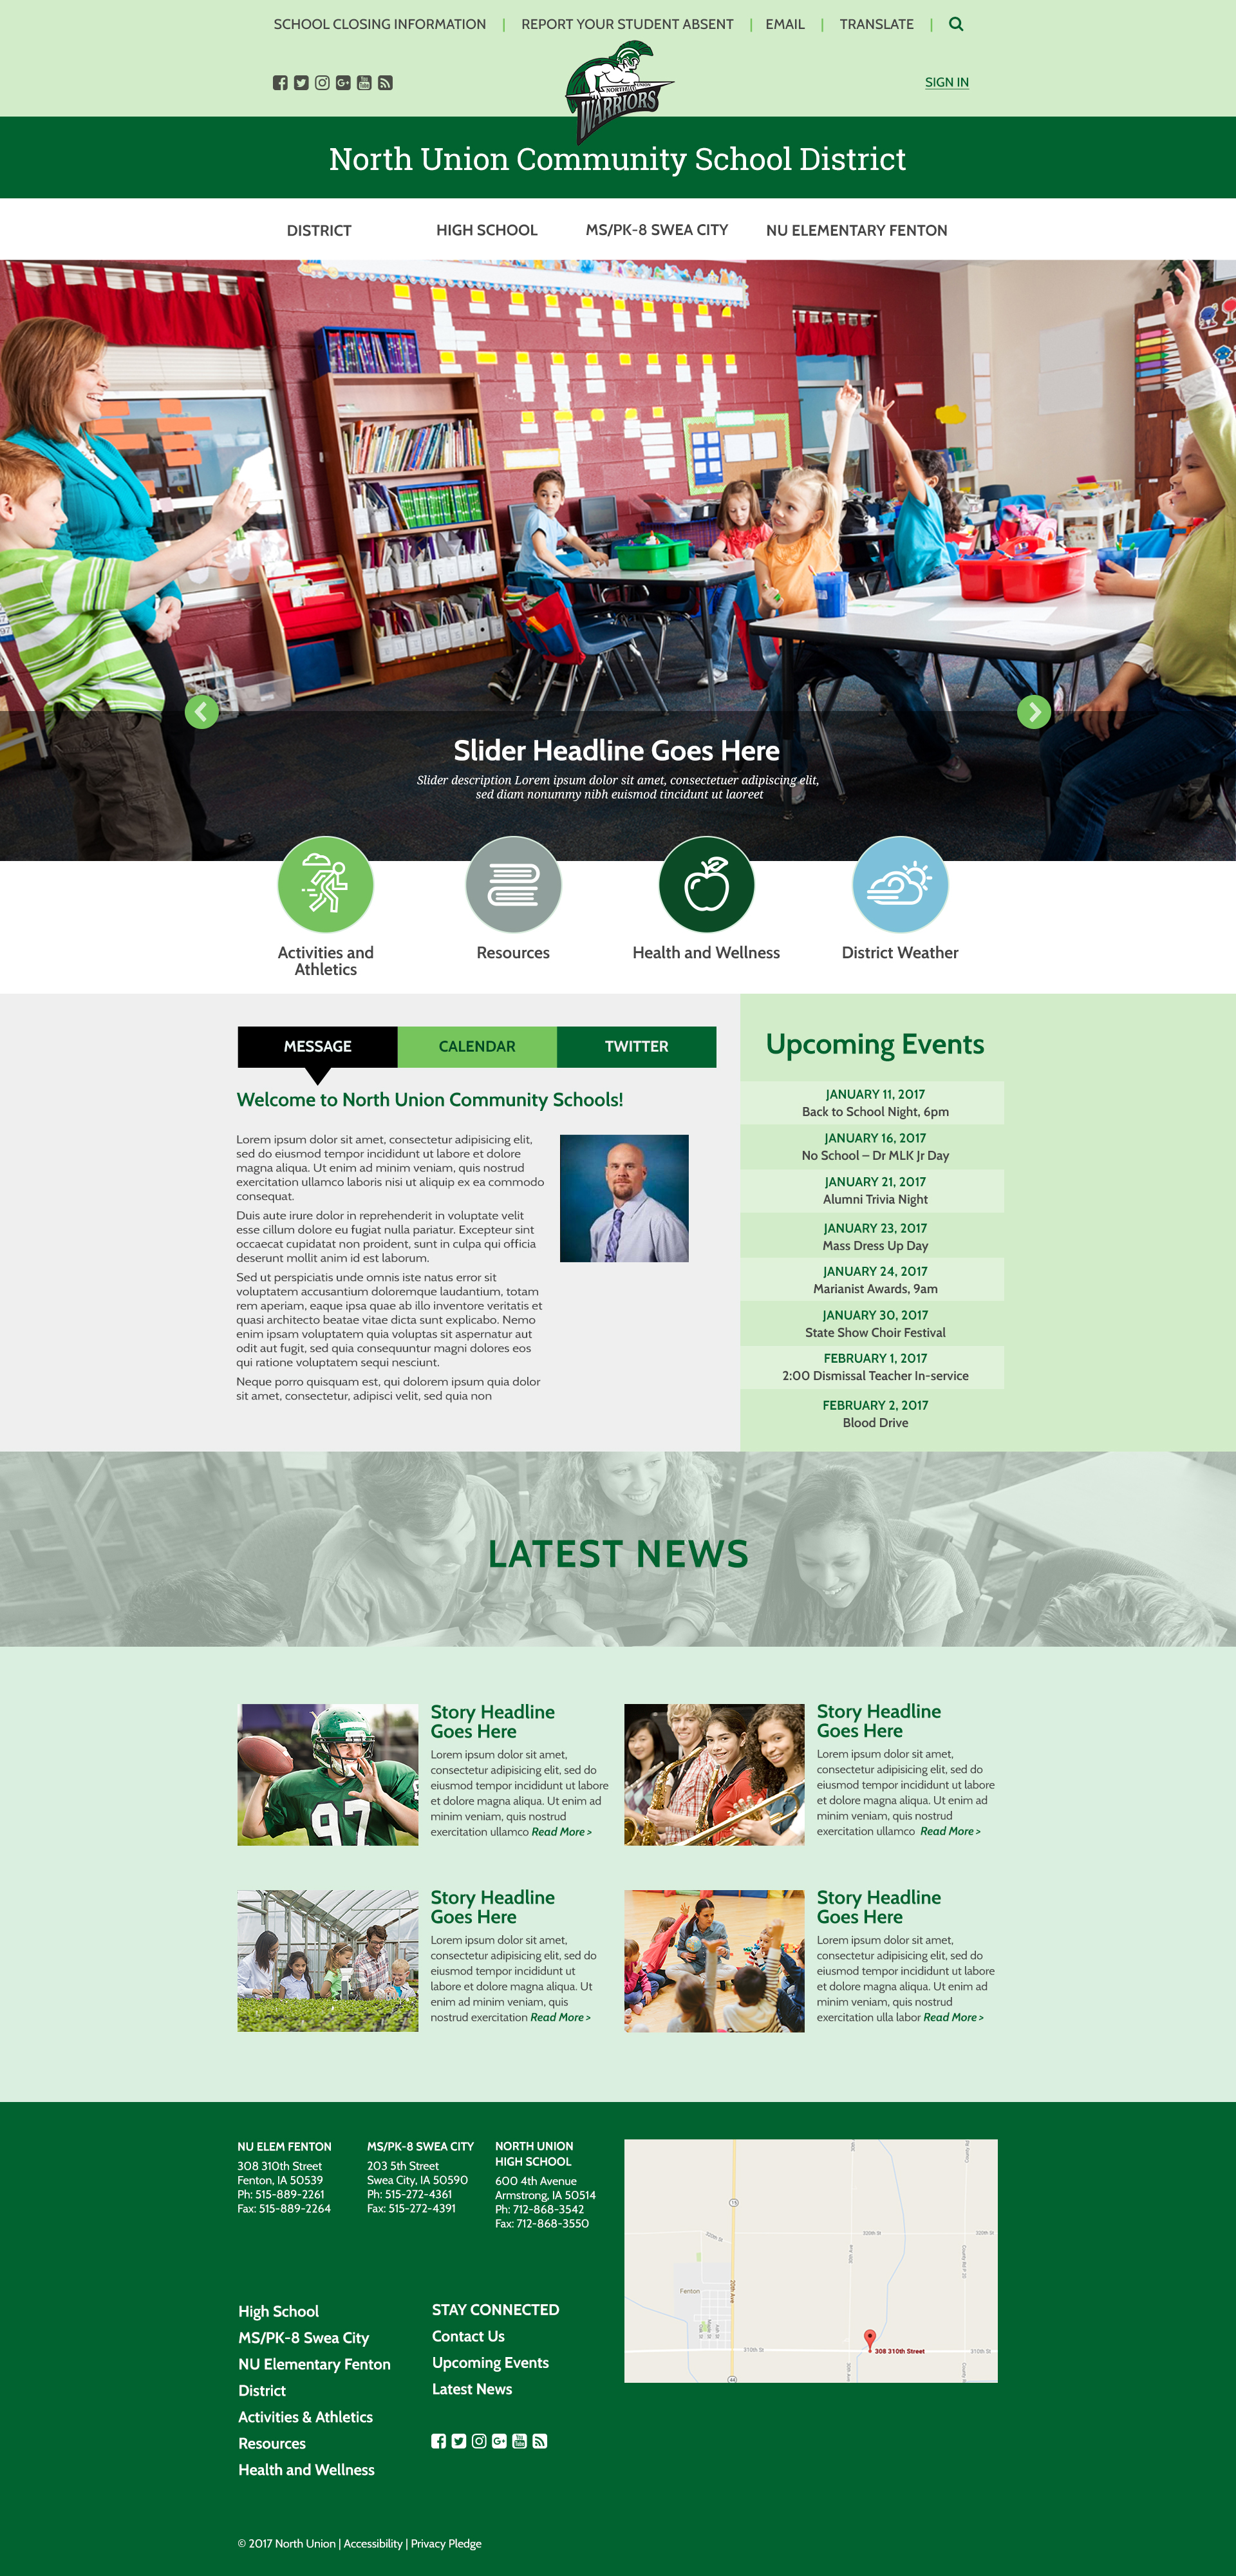 Design #3 - Homepage